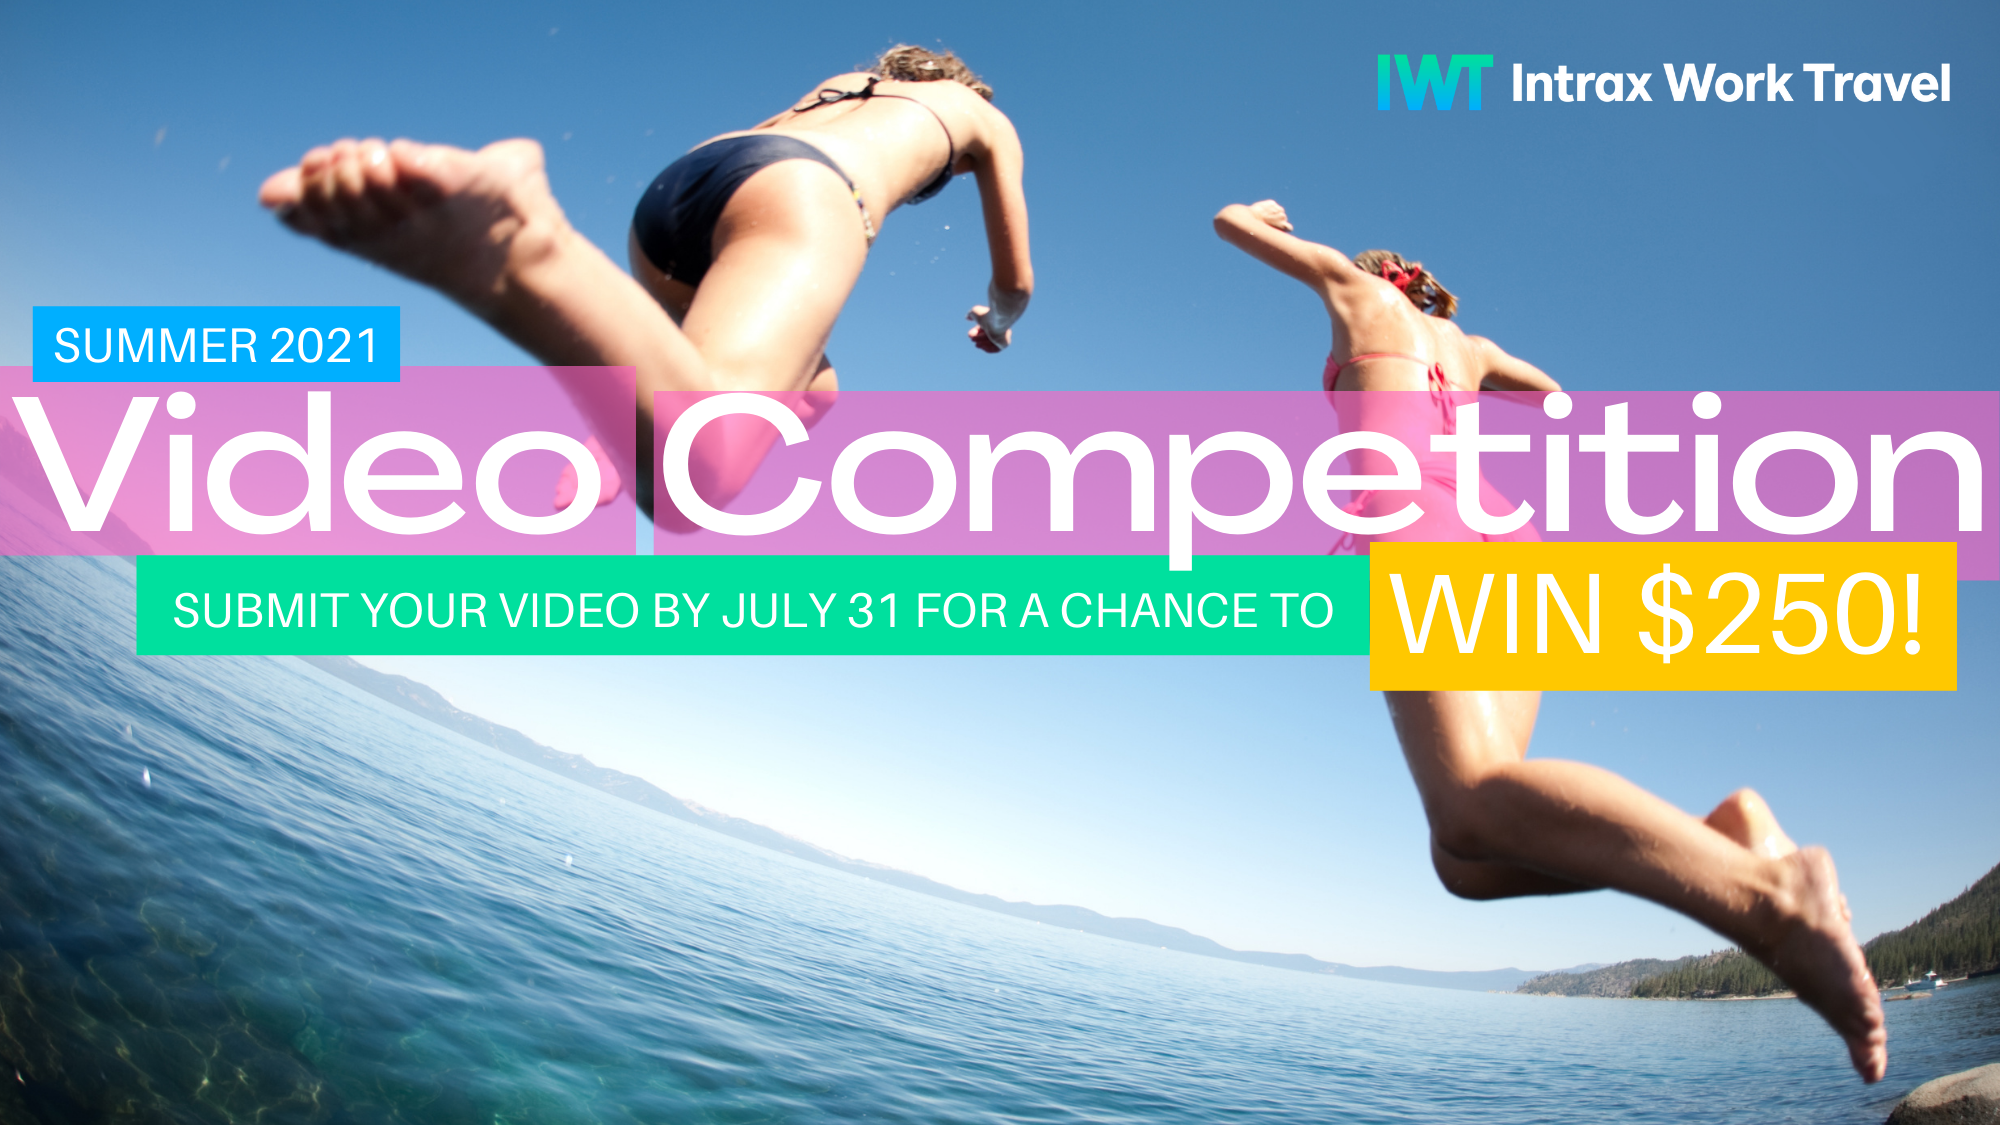 Summer 2021 Video Competition